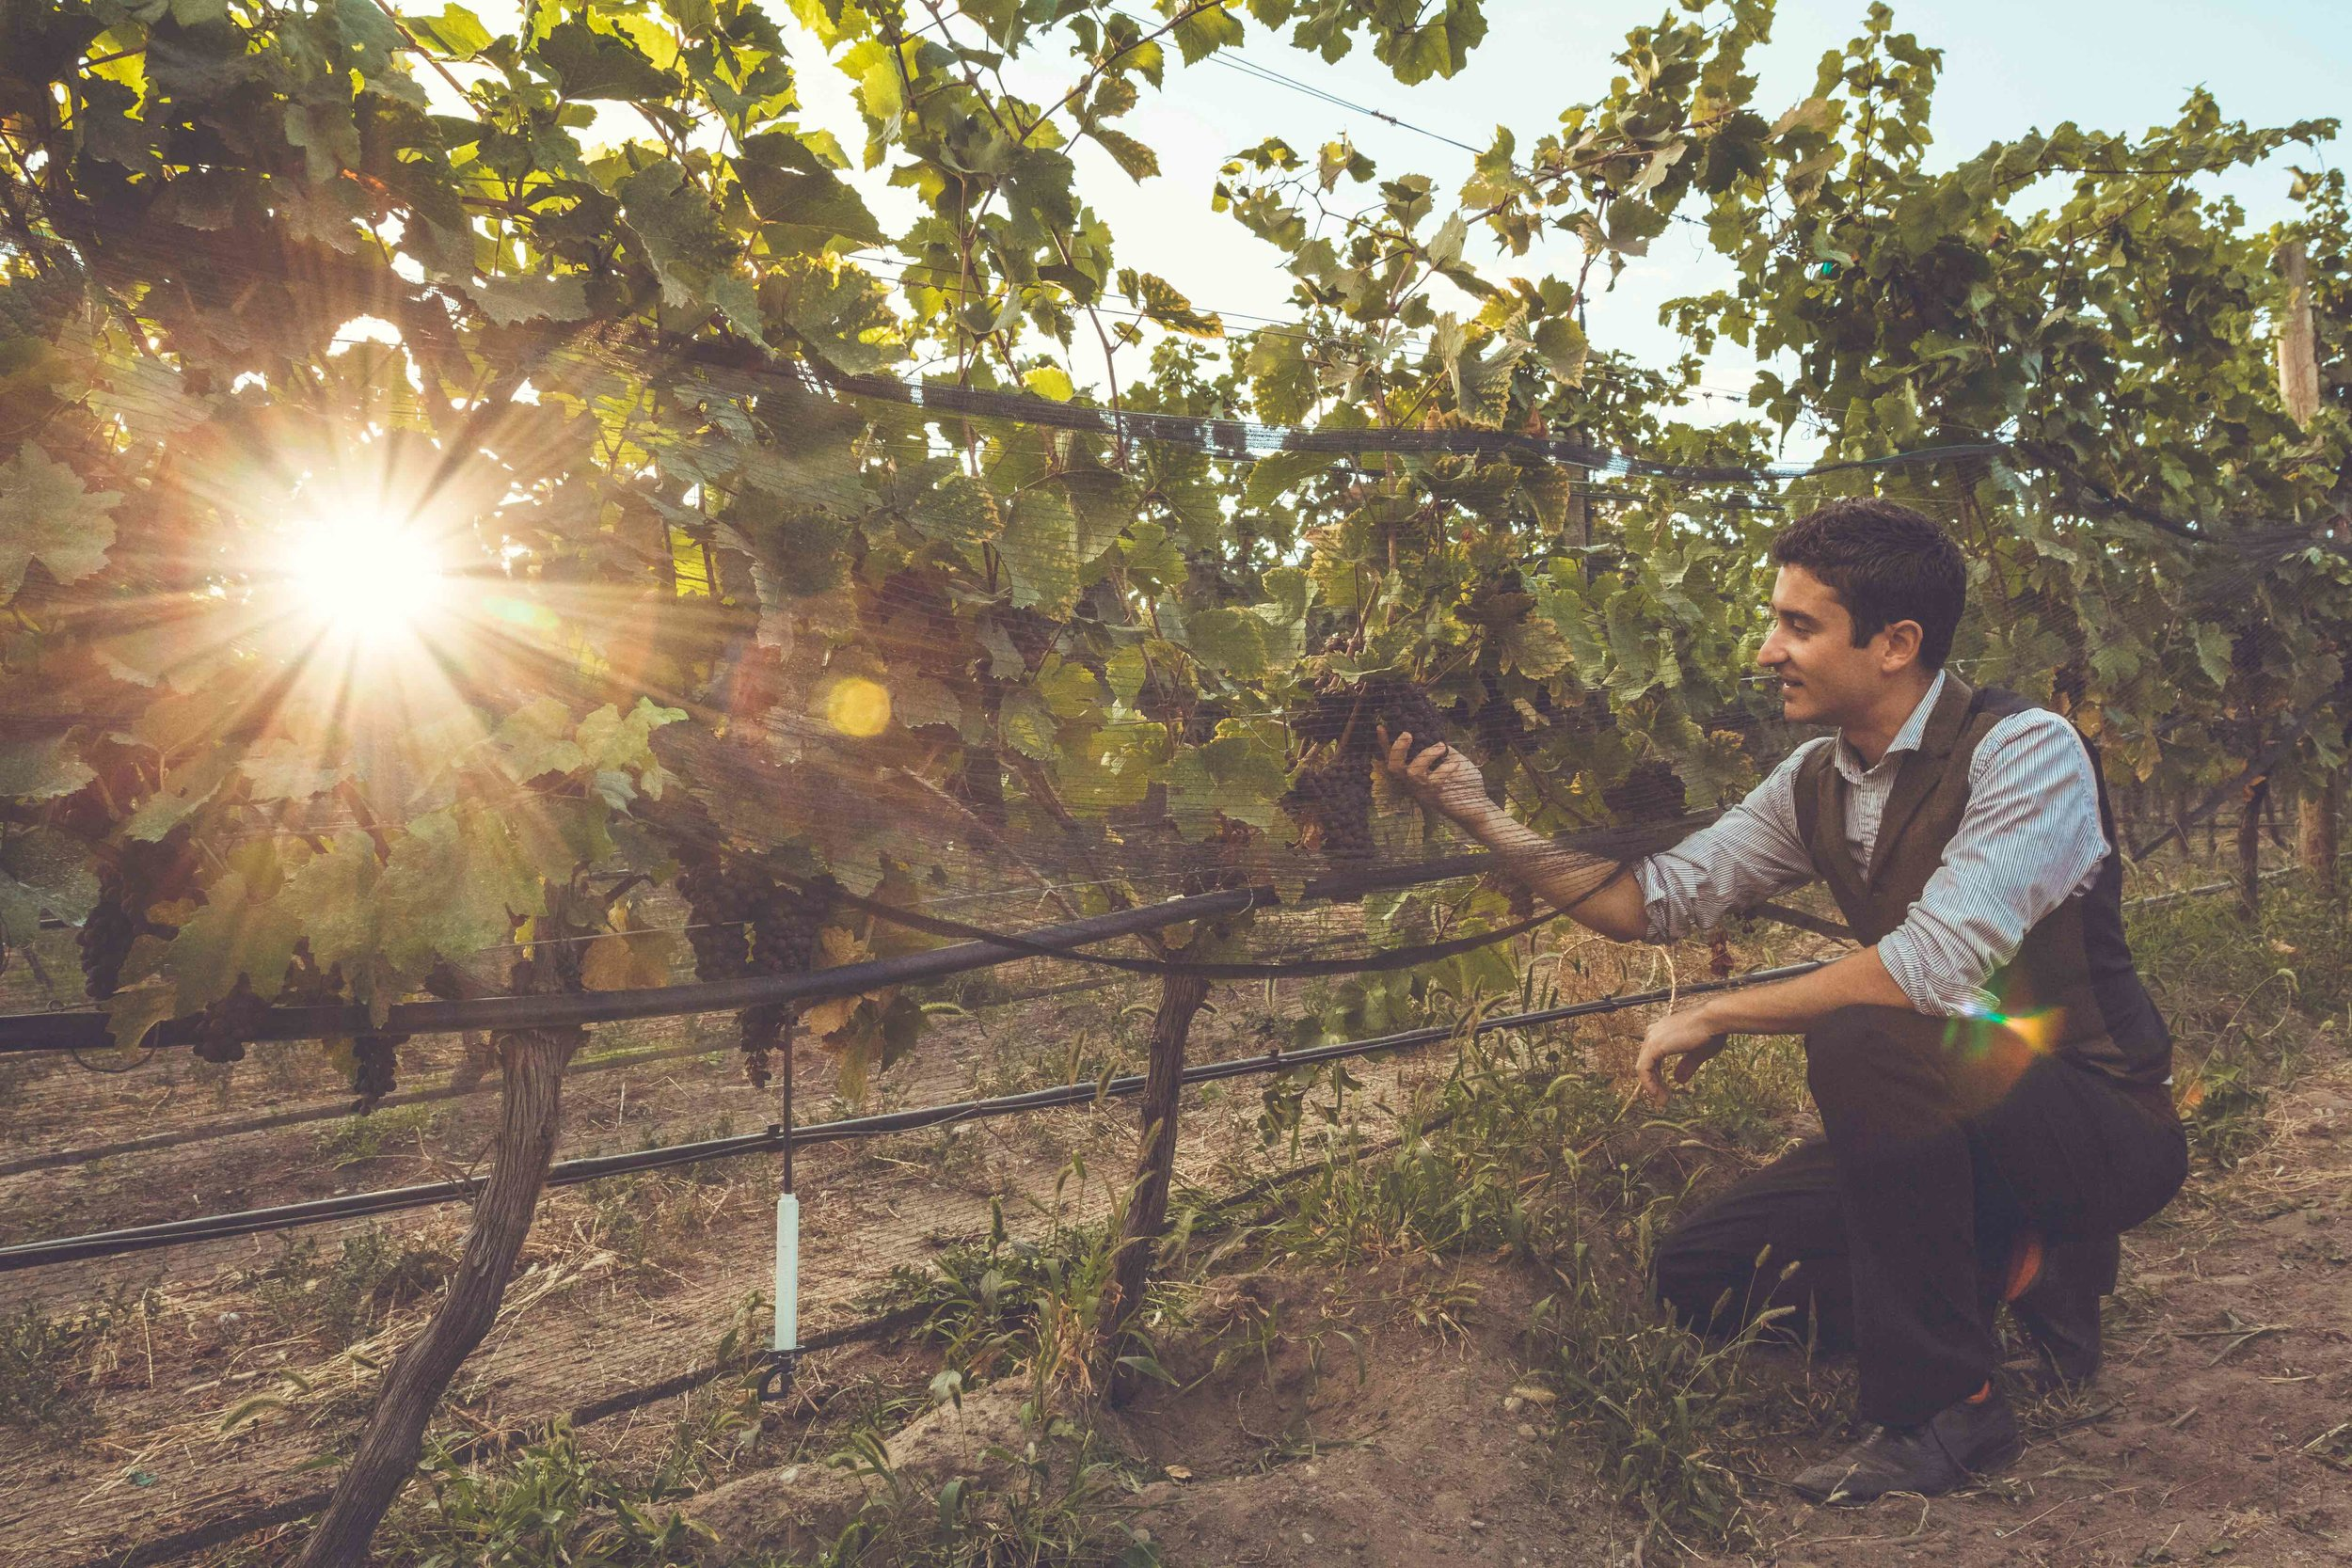 smallOKCrushPadsept2015-Mike West kneeling in Switchback Vineyard-credit Taryn Liv Parker